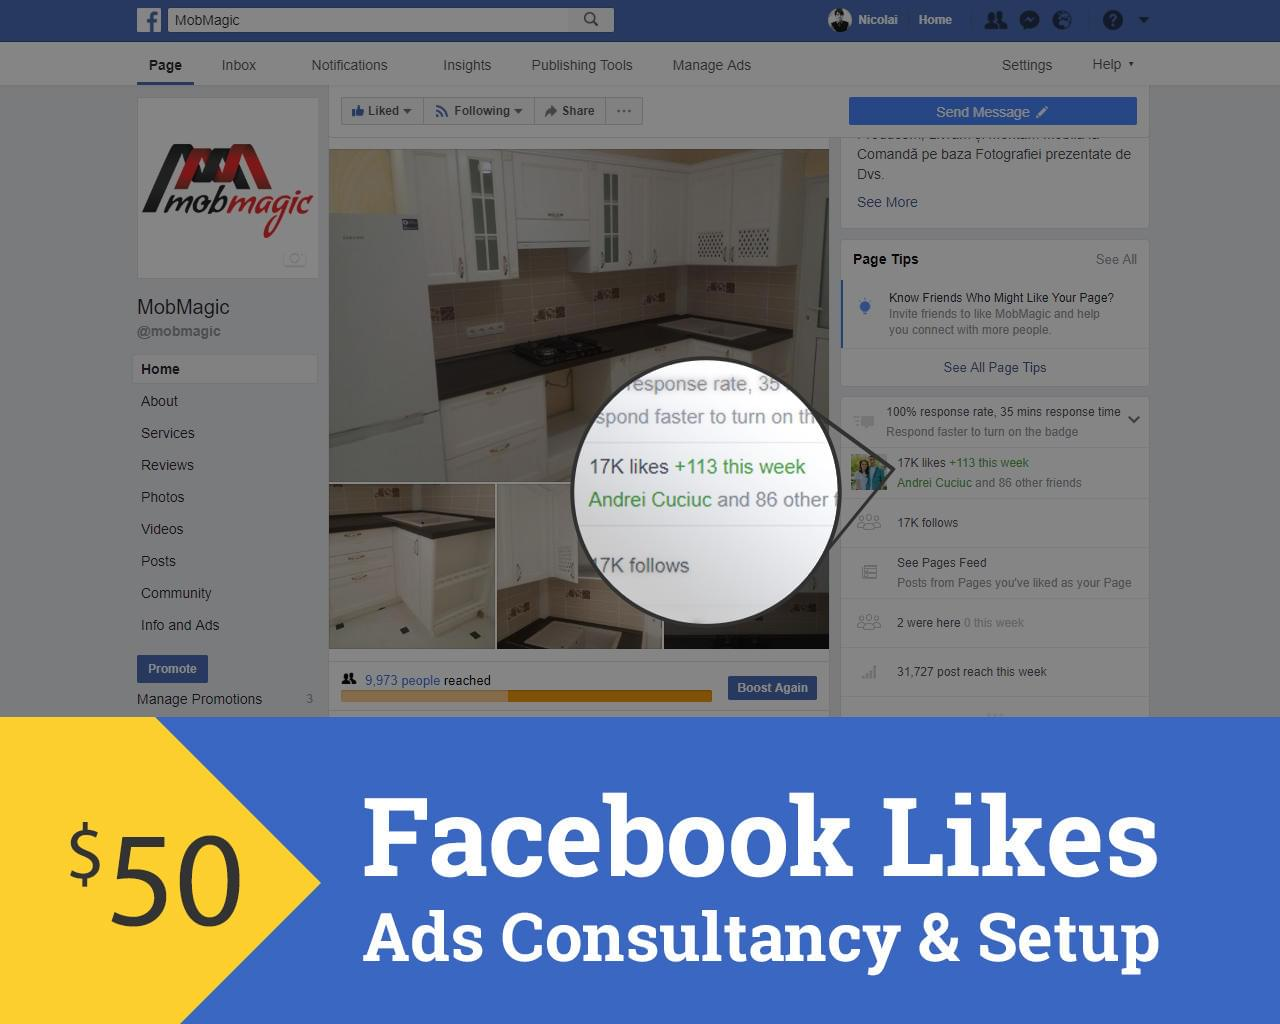 Facebook Likes - Ads Consultancy & Setup by 1theme - 113311